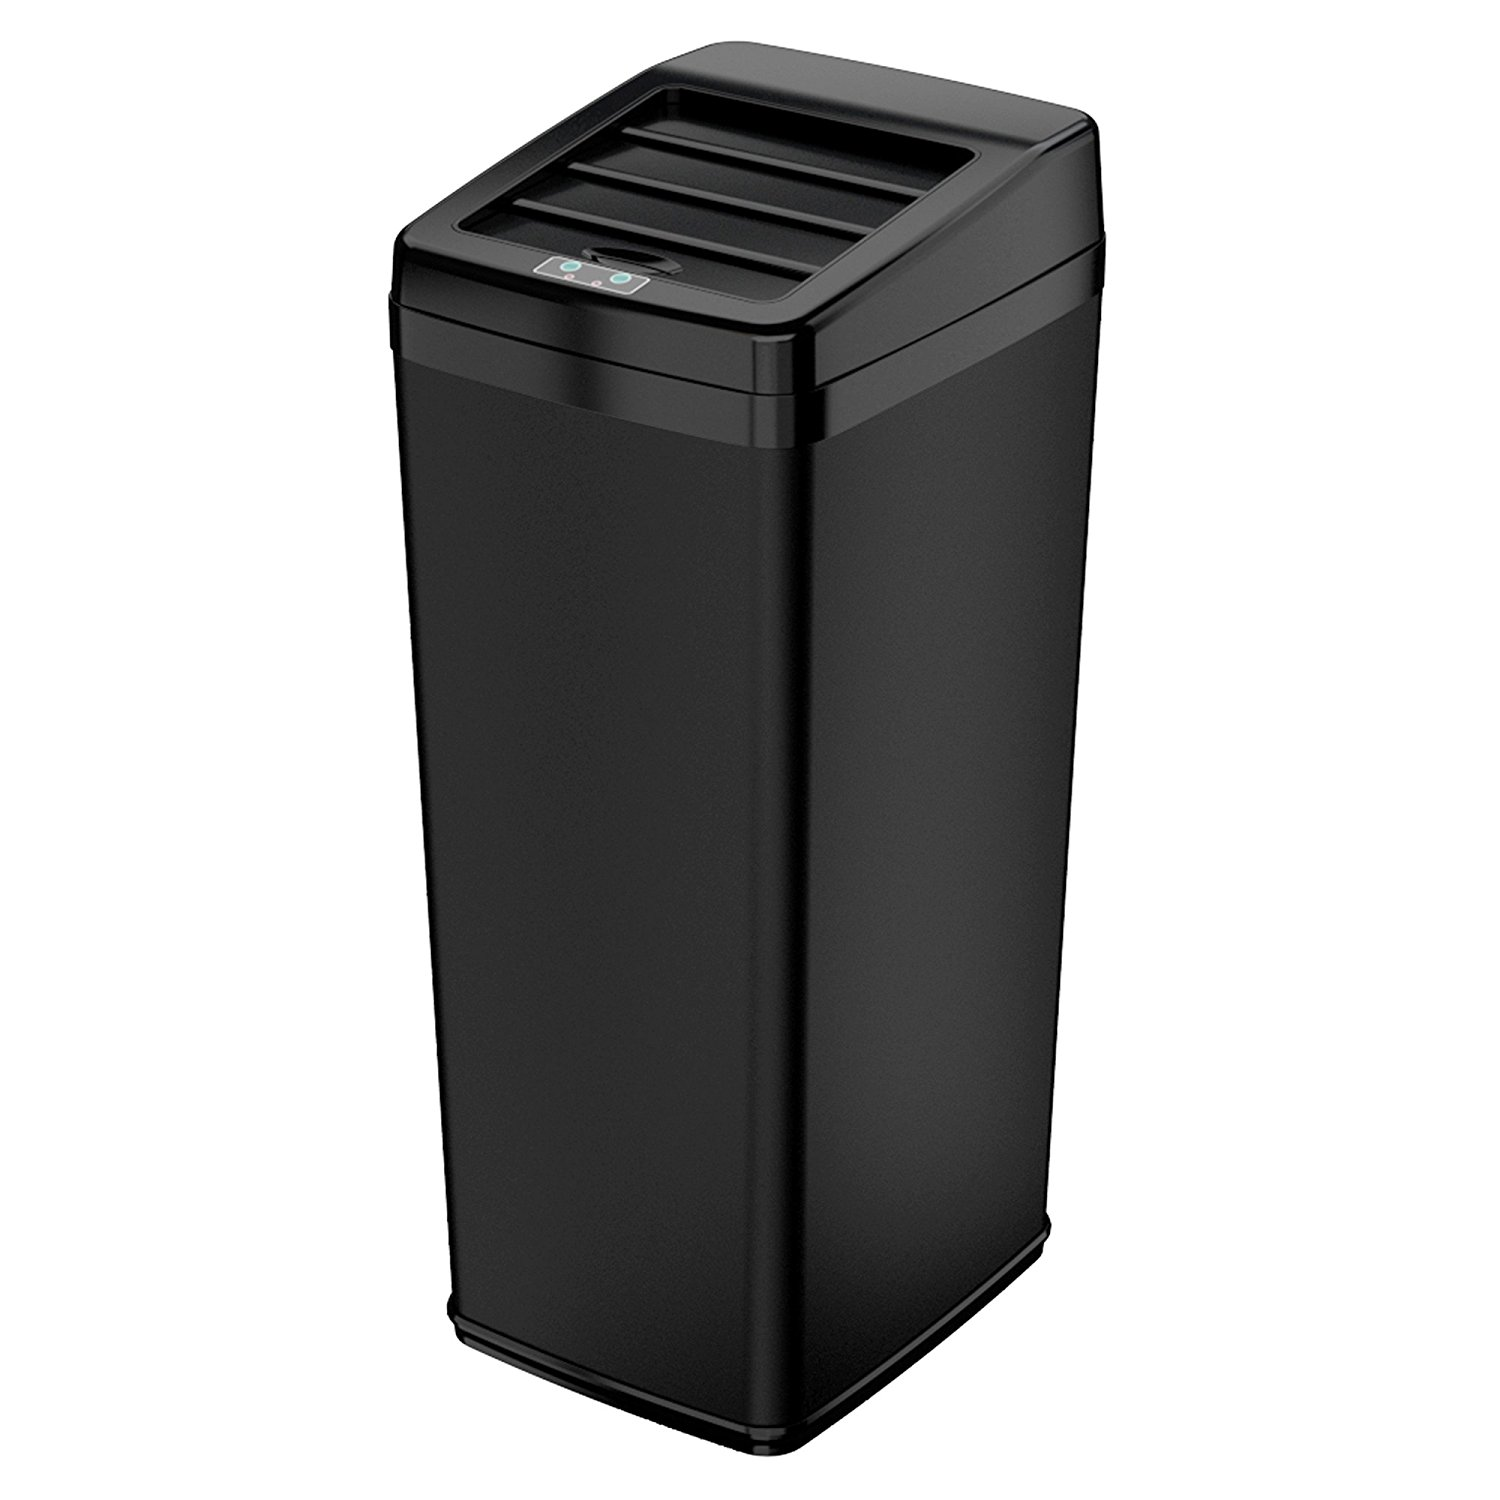 Black Metal Trash Can Itouchless 14 Gallon Black Steel Automatic Sensor